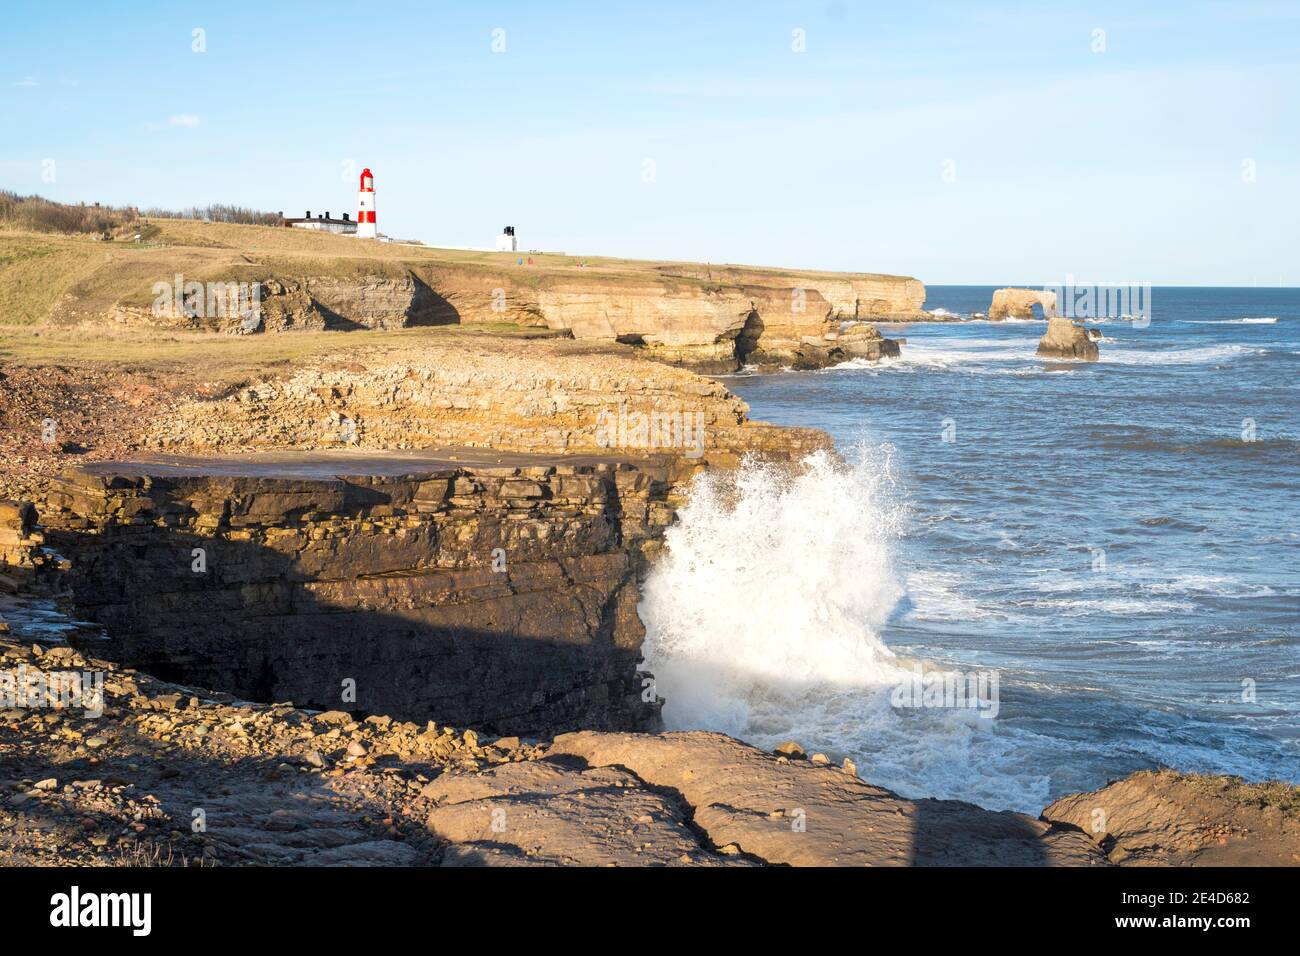 waves-breaking-over-cliffs-south-of-sout